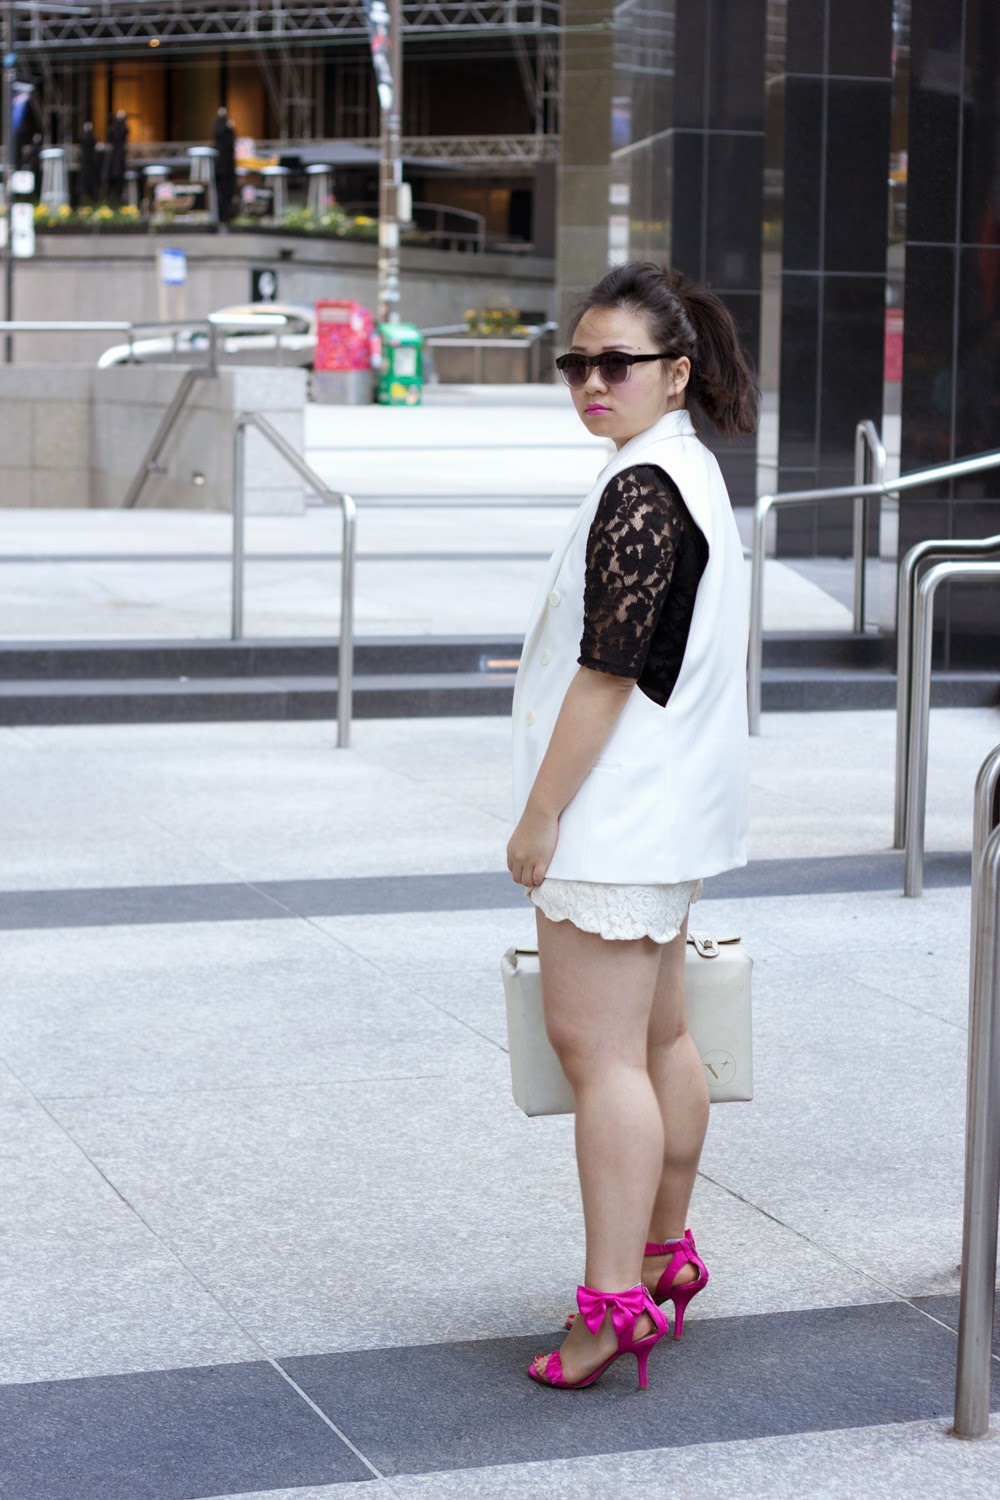 black-and-white-spring-look, lace-on-lace, white-collar-top, shorts, street-style